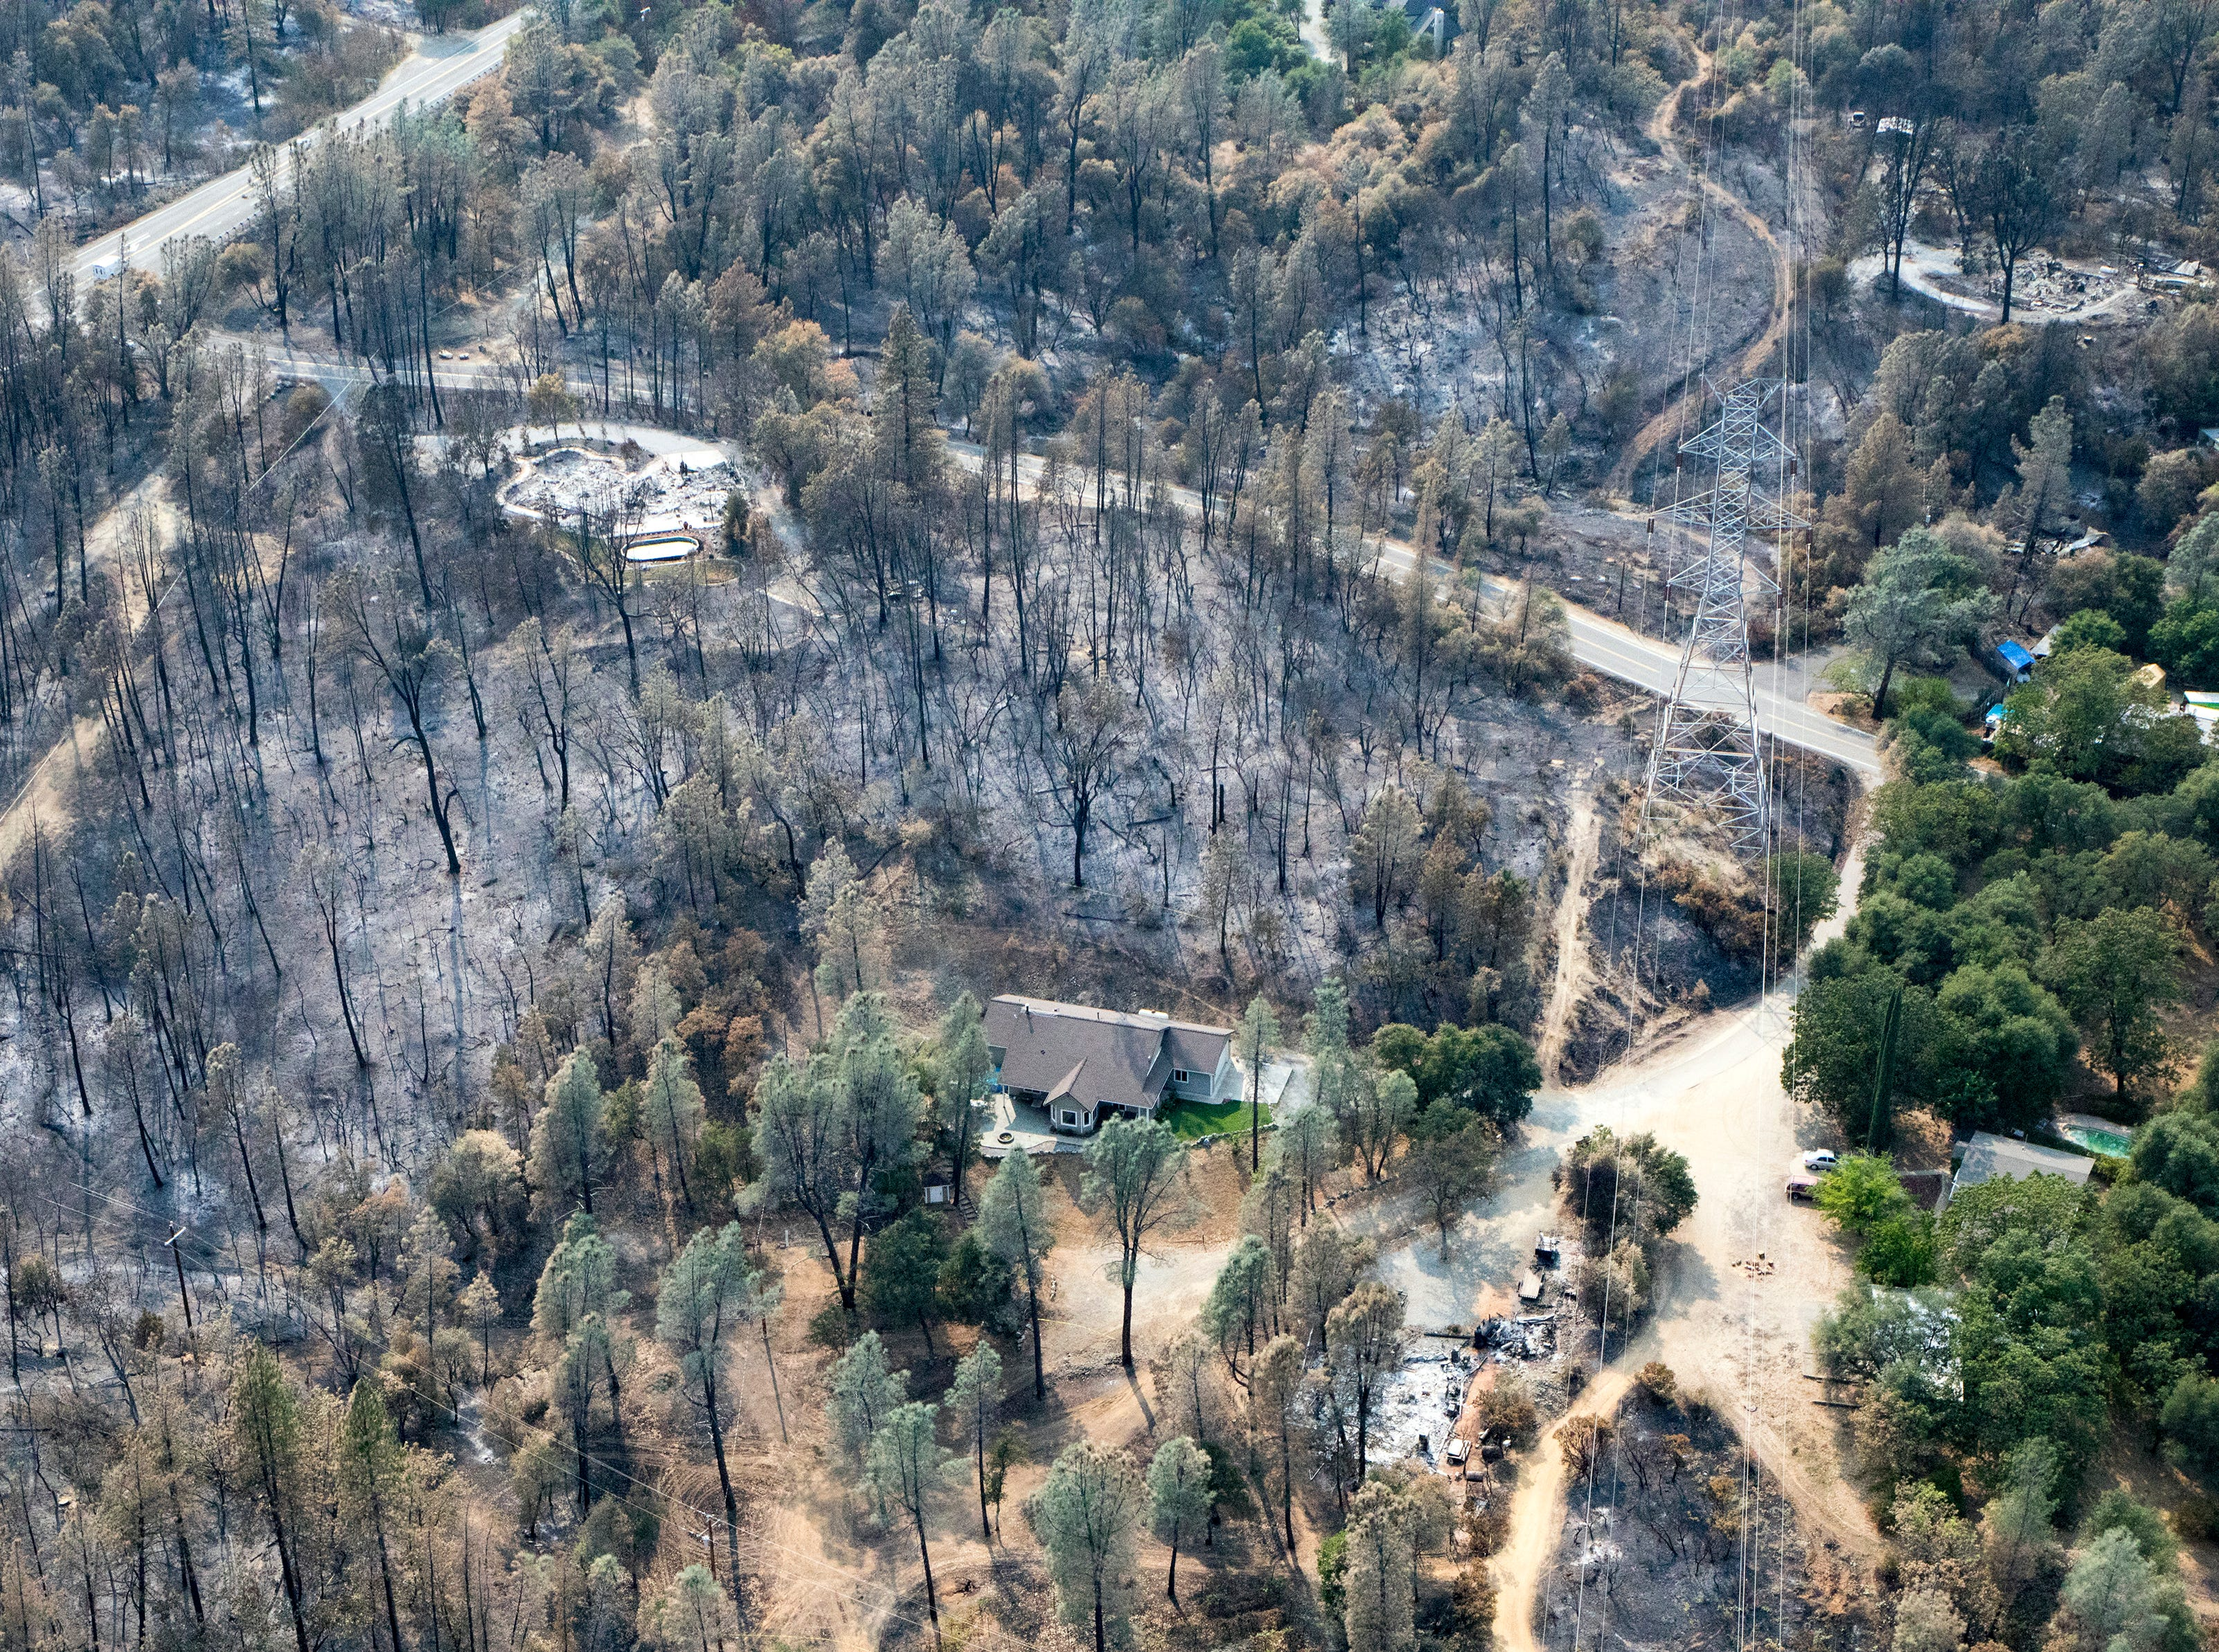 Aerial of the Shasta area following the Carr fire in Shasta Co., Calif., Tuesday, August 21, 2018.